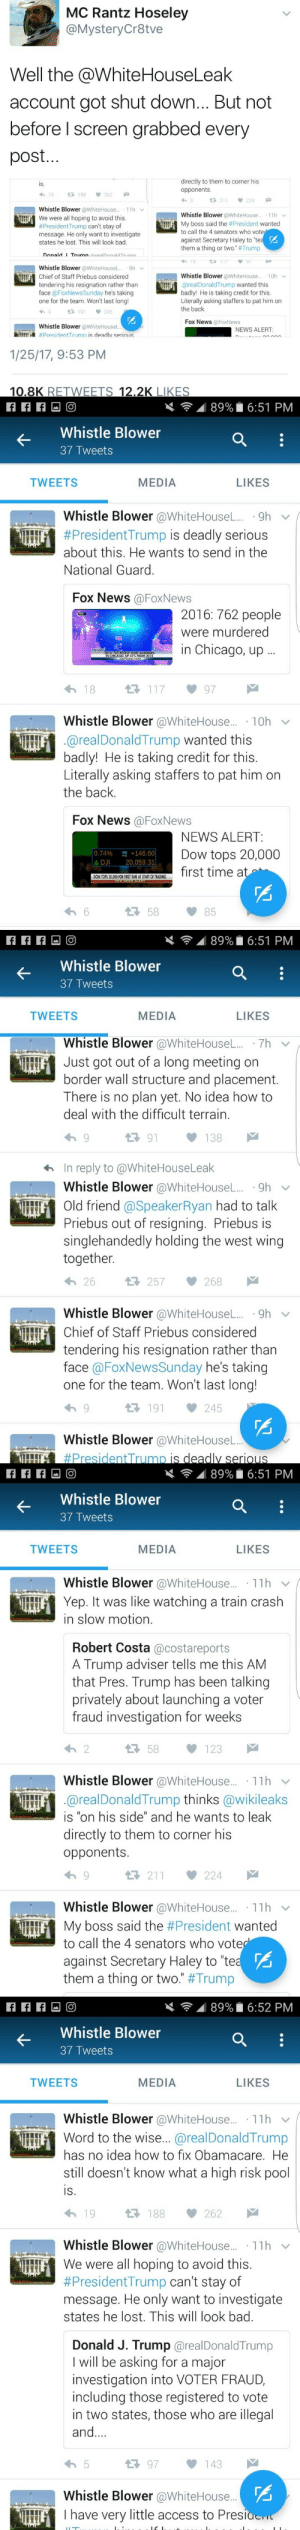 "Send In: MC Rantz Hoseley  @MysteryCr8tve  Well the @WhiteHouseLeak  account got shut down... But not  before I screen grabbed every  post...  directly to them to corner his  opponents  is.  19  188  262  224  好211  Whistle Blower @WhiteHouse... 11h  We were all hoping to avoid this  #PresidentTrump can't stay of  message. He only want to investigate  states he lost. This will look bad.  Whistle Blower @WhiteHouse... 11h  My boss said the #President wanted  to call the 4 senators who voter  against Secretary Haley to ""teaE  them a thing or two. #Trump  I  Donald TrumnrealDonaldTrumn  97  18  Whistle Blower @WhiteHouseL.. 9h  Chief of Staff Priebus considered  tendering his resignation rather than  face @FoxNewsSunday he's taking  one for the team. Won't last long!  Whistle Blower @WhiteHouse..  10h  @realDonaldTrump wanted this  L  badly! He is taking credit for this  Literally asking staffers to pat him on  the back  1 191  245  9  Fox News @Fox News  Whistle Blower @WhiteHouseL.  NEWS ALERT:  #President Trumn is deadlv serious  1/25/17, 9:53 PM  10.8K RETVWEETS 12.2K LIKES   89% 6:51 PM  Whistle Blower  37 Tweets  MEDIA  TWEETS  LIKES  Whistle Blower @WhiteHouseL.. 9h  #PresidentTrump is deadly serious  about this. He wants to send in the  National Guard.  Fox News @FoxNews  2016: 762 people  were murdered  in Chicago, up  NCHCACOPLE WERE MURDERED  UP 57% FROM 2015  117  18  97  Whistle Blower @WhiteHouse.. 10h  @realDonaldTrump wanted this  badly! He is taking credit for this.  Literally asking staffers to pat him on  the back.  Fox News @FoxNews  NEWS ALERT:  0.74%  A DJI  +146.60  20,059.31  Dow tops 20,000  first time at  DOW TOPS 20,000 FOR FIRST TIME AT START OF TRADING  58  6  85   89% 6:51 PM  Whistle Blower  37 Tweets  MEDIA  TWEETS  LIKES  Whistle Blower @WhiteHouseL. 7h  Just got out of a long meeting on  border wall structure and placement.  There is no plan yet. No idea how to  deal with the difficult terrain.  91  138  In reply to @WhiteHouse Leak  Whistle Blower@WhiteHouseL... 9h  Old friend @SpeakerRyan had to talk  Priebus out of resigning. Priebus is  singlehandedly holding the west wing  together.  1257  268  26  Whistle Blower @WhiteHouseL... 9h  Chief of Staff Priebus considered  tendering his resignation rather than  face @FoxNewsSunday he's taking  one for the team. Won't last long!  191  245  Whistle Blower @WhiteHouseL...  #PresidentTrump is deadlv serious   89% 6:51 PM  Whistle Blower  37 Tweets  TWEETS  MEDIA  LIKES  Whistle Blower @WhiteHouse.... 11h  Yep. It was like watching a train crash  in slow motion  Robert Costa @costareports  A Trump adviser tells me this AM  that Pres. Trump has been talking  privately about launching a voter  fraud investigation for weeks  t58  2  123  Whistle Blower @WhiteHouse.. 11h  @realDonaldTrump thinks @wikileaks  is ""on his side"" and he wants to leak  directly to them to corner his  opponents.  1 211  224  Whistle Blower @WhiteHouse.. 11h  My boss said the #President wanted  to call the 4 senators who voter  against Secretary Haley to ""tea  them a thing or two."" #Trump   89% 6:52 PM  Whistle Blower  37 Tweets  MEDIA  TWEETS  LIKES  Whistle Blower @WhiteHouse.. 11h  Word to the wise... @realDonaldTrump  has no idea how to fix Obamacare. He  still doesn't know what a high risk pool  is.  L188  262  19  Whistle Blower @WhiteHouse.... 11h  We were all hoping to avoid this.  #PresidentTrump can't stay of  message. He only want to investigate  states he lost. This will look bad.  Donald J. Trump @realDonaldTrump  I will be asking for a major  investigation into VOTER FRAUD  including those registered to vote  in two states, those who are illegal  and...  5  97  143  Whistle Blower @WhiteHouse..  Thave very little access to Presia  lT"